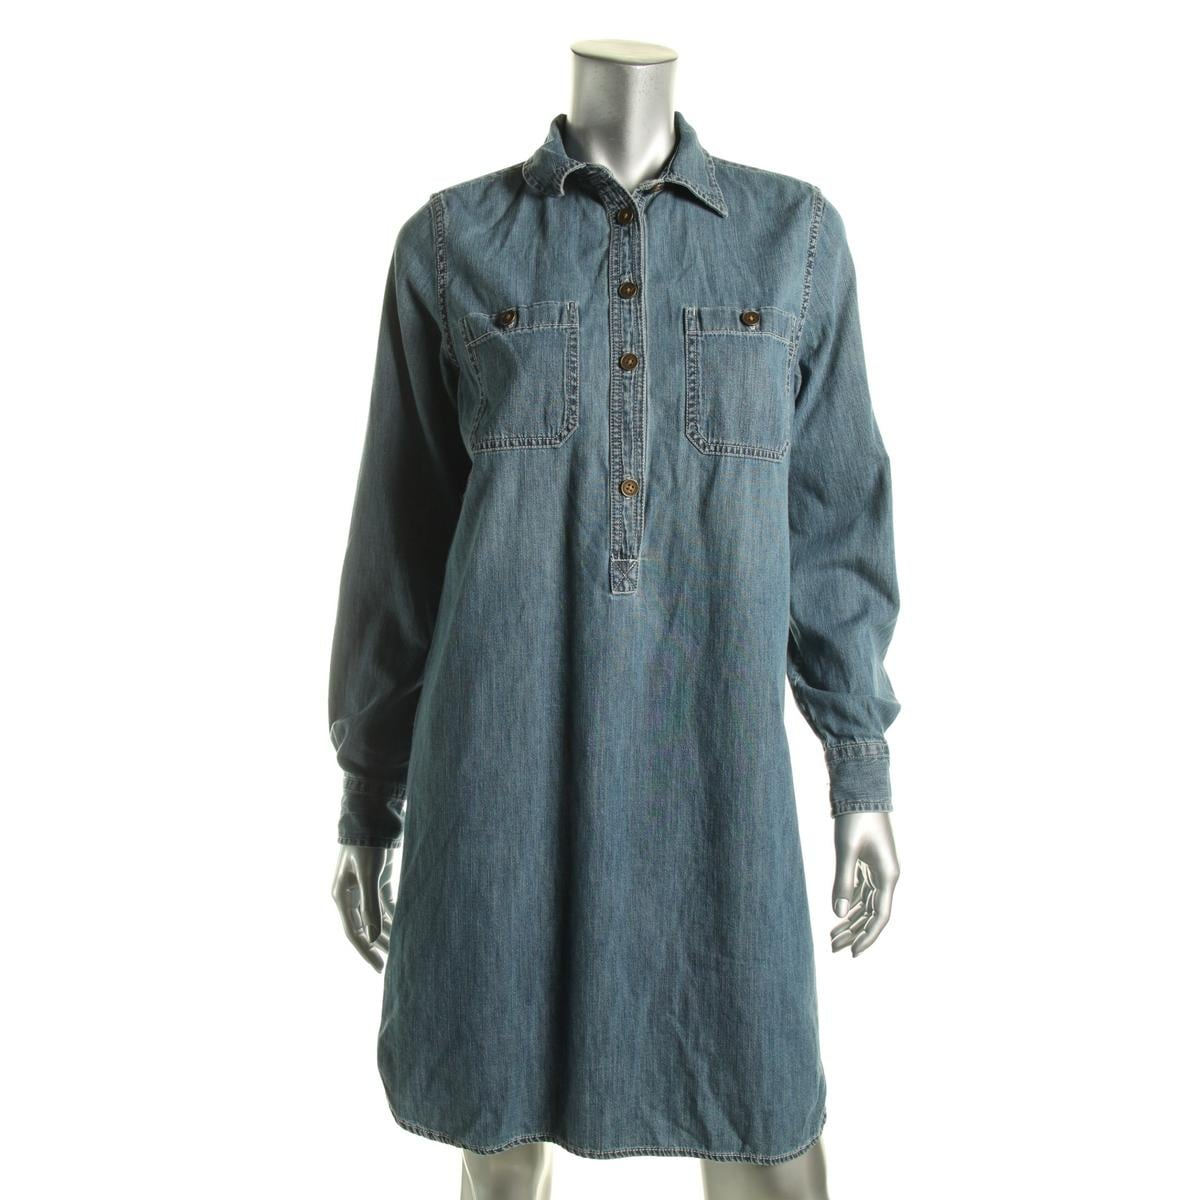 Shop American Living Womens Shirtdress Denim Button Down Free